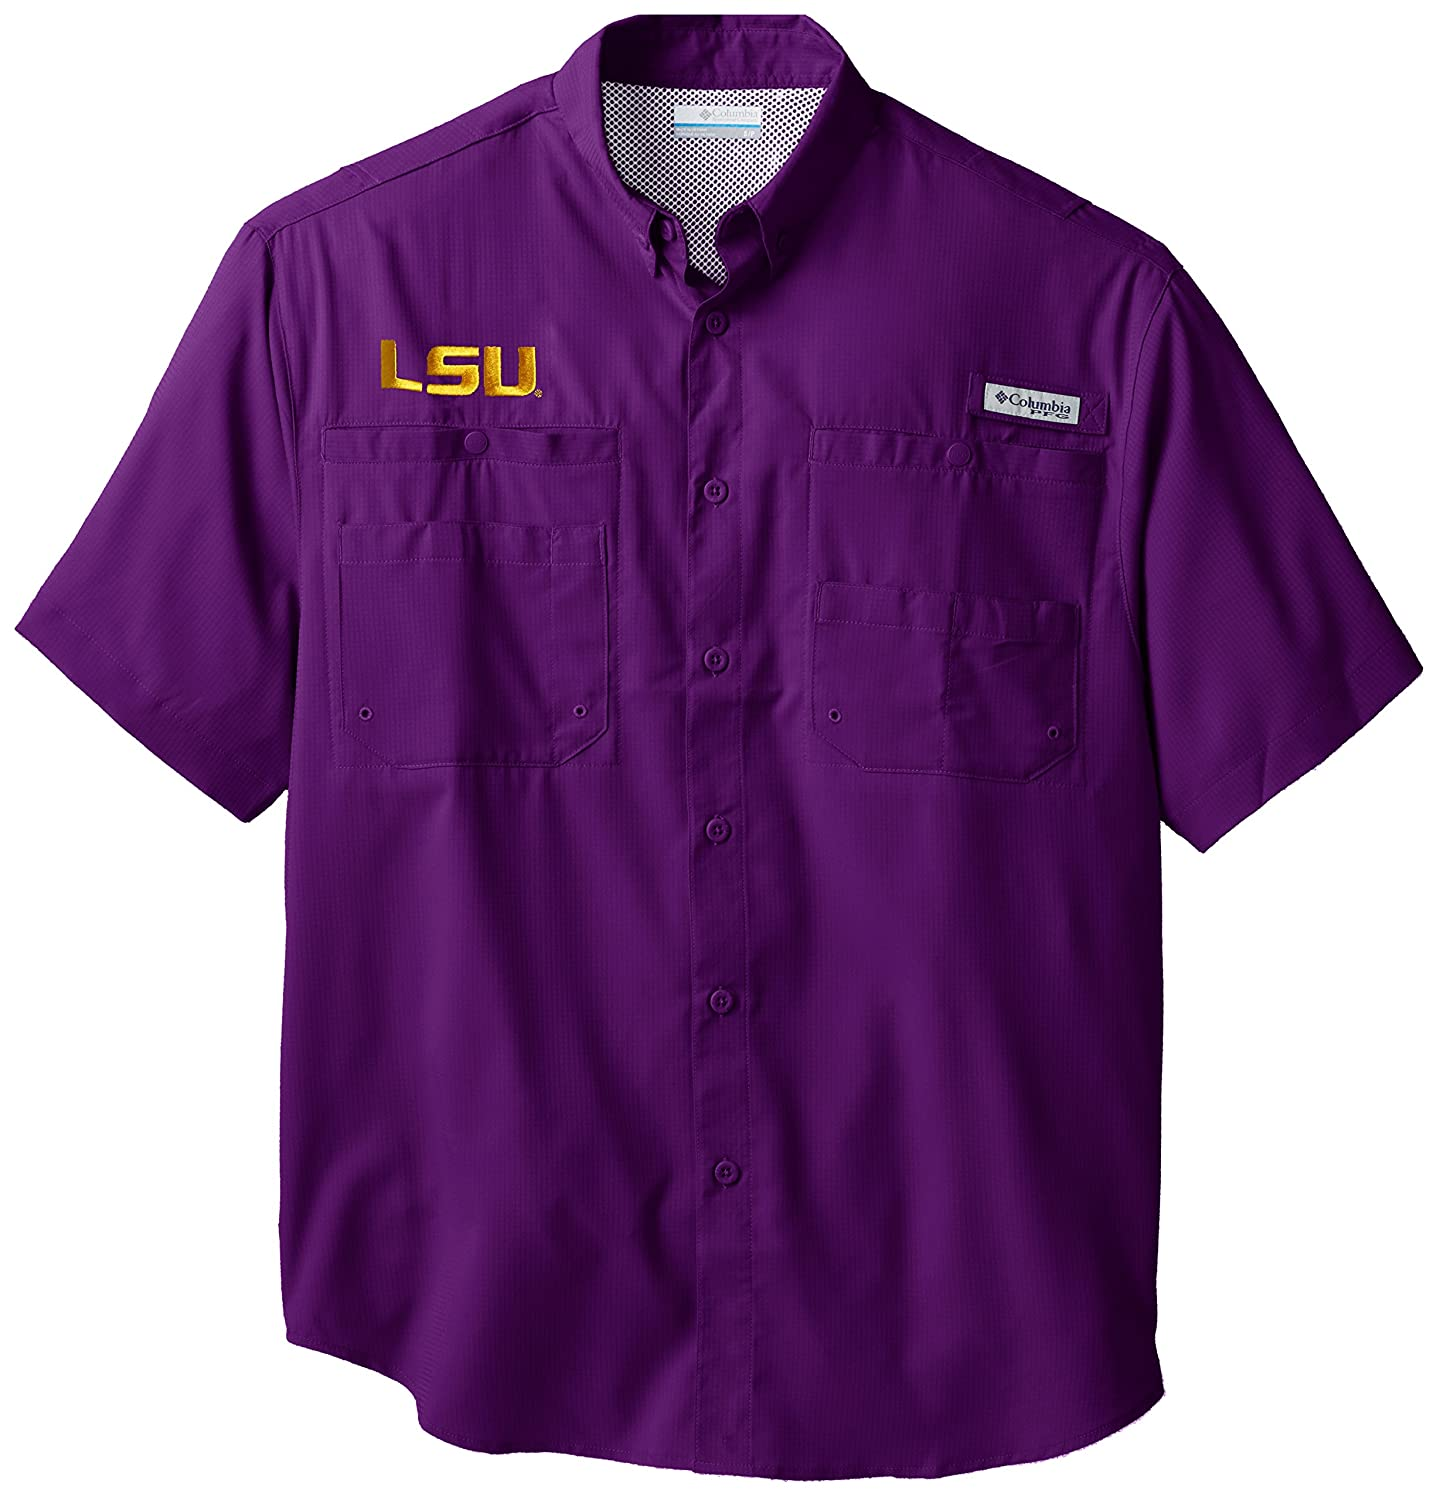 b523c5d53 Amazon.com : NCAA LSU Tigers Collegiate Tamiami Shirt : Sports & Outdoors